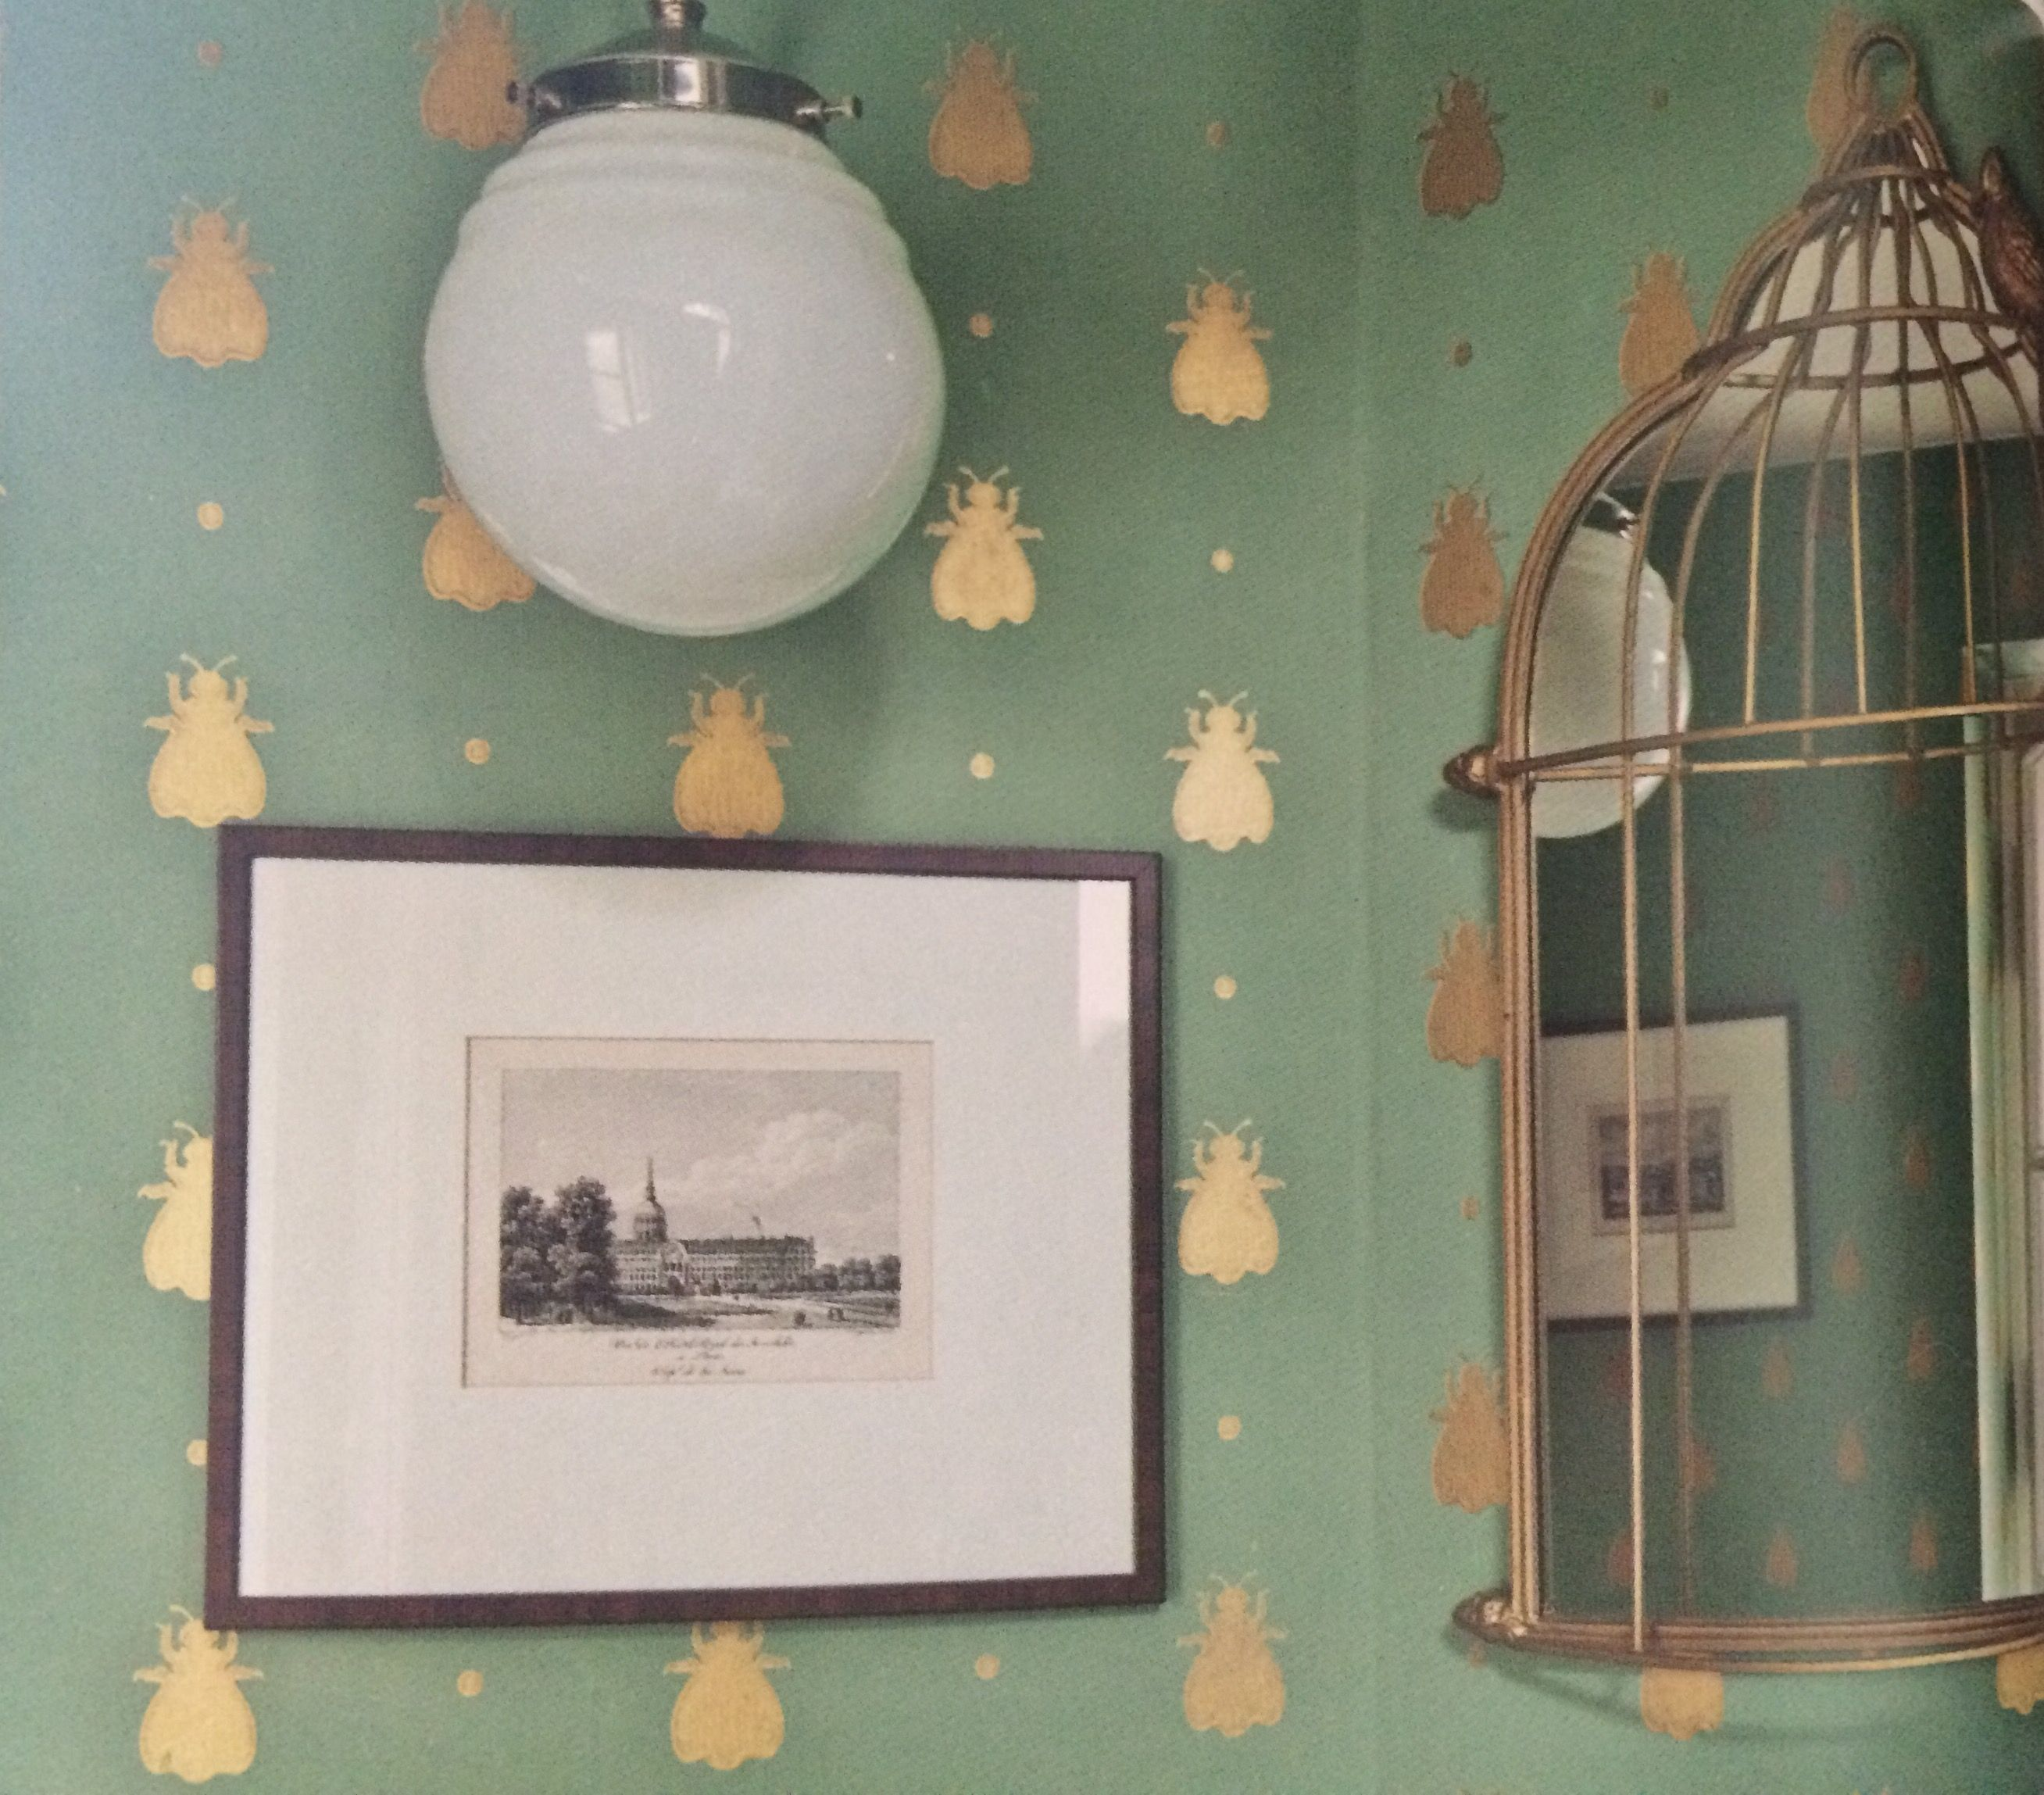 Bumble Bee wallpaper from Farrow & Ball Decorating in